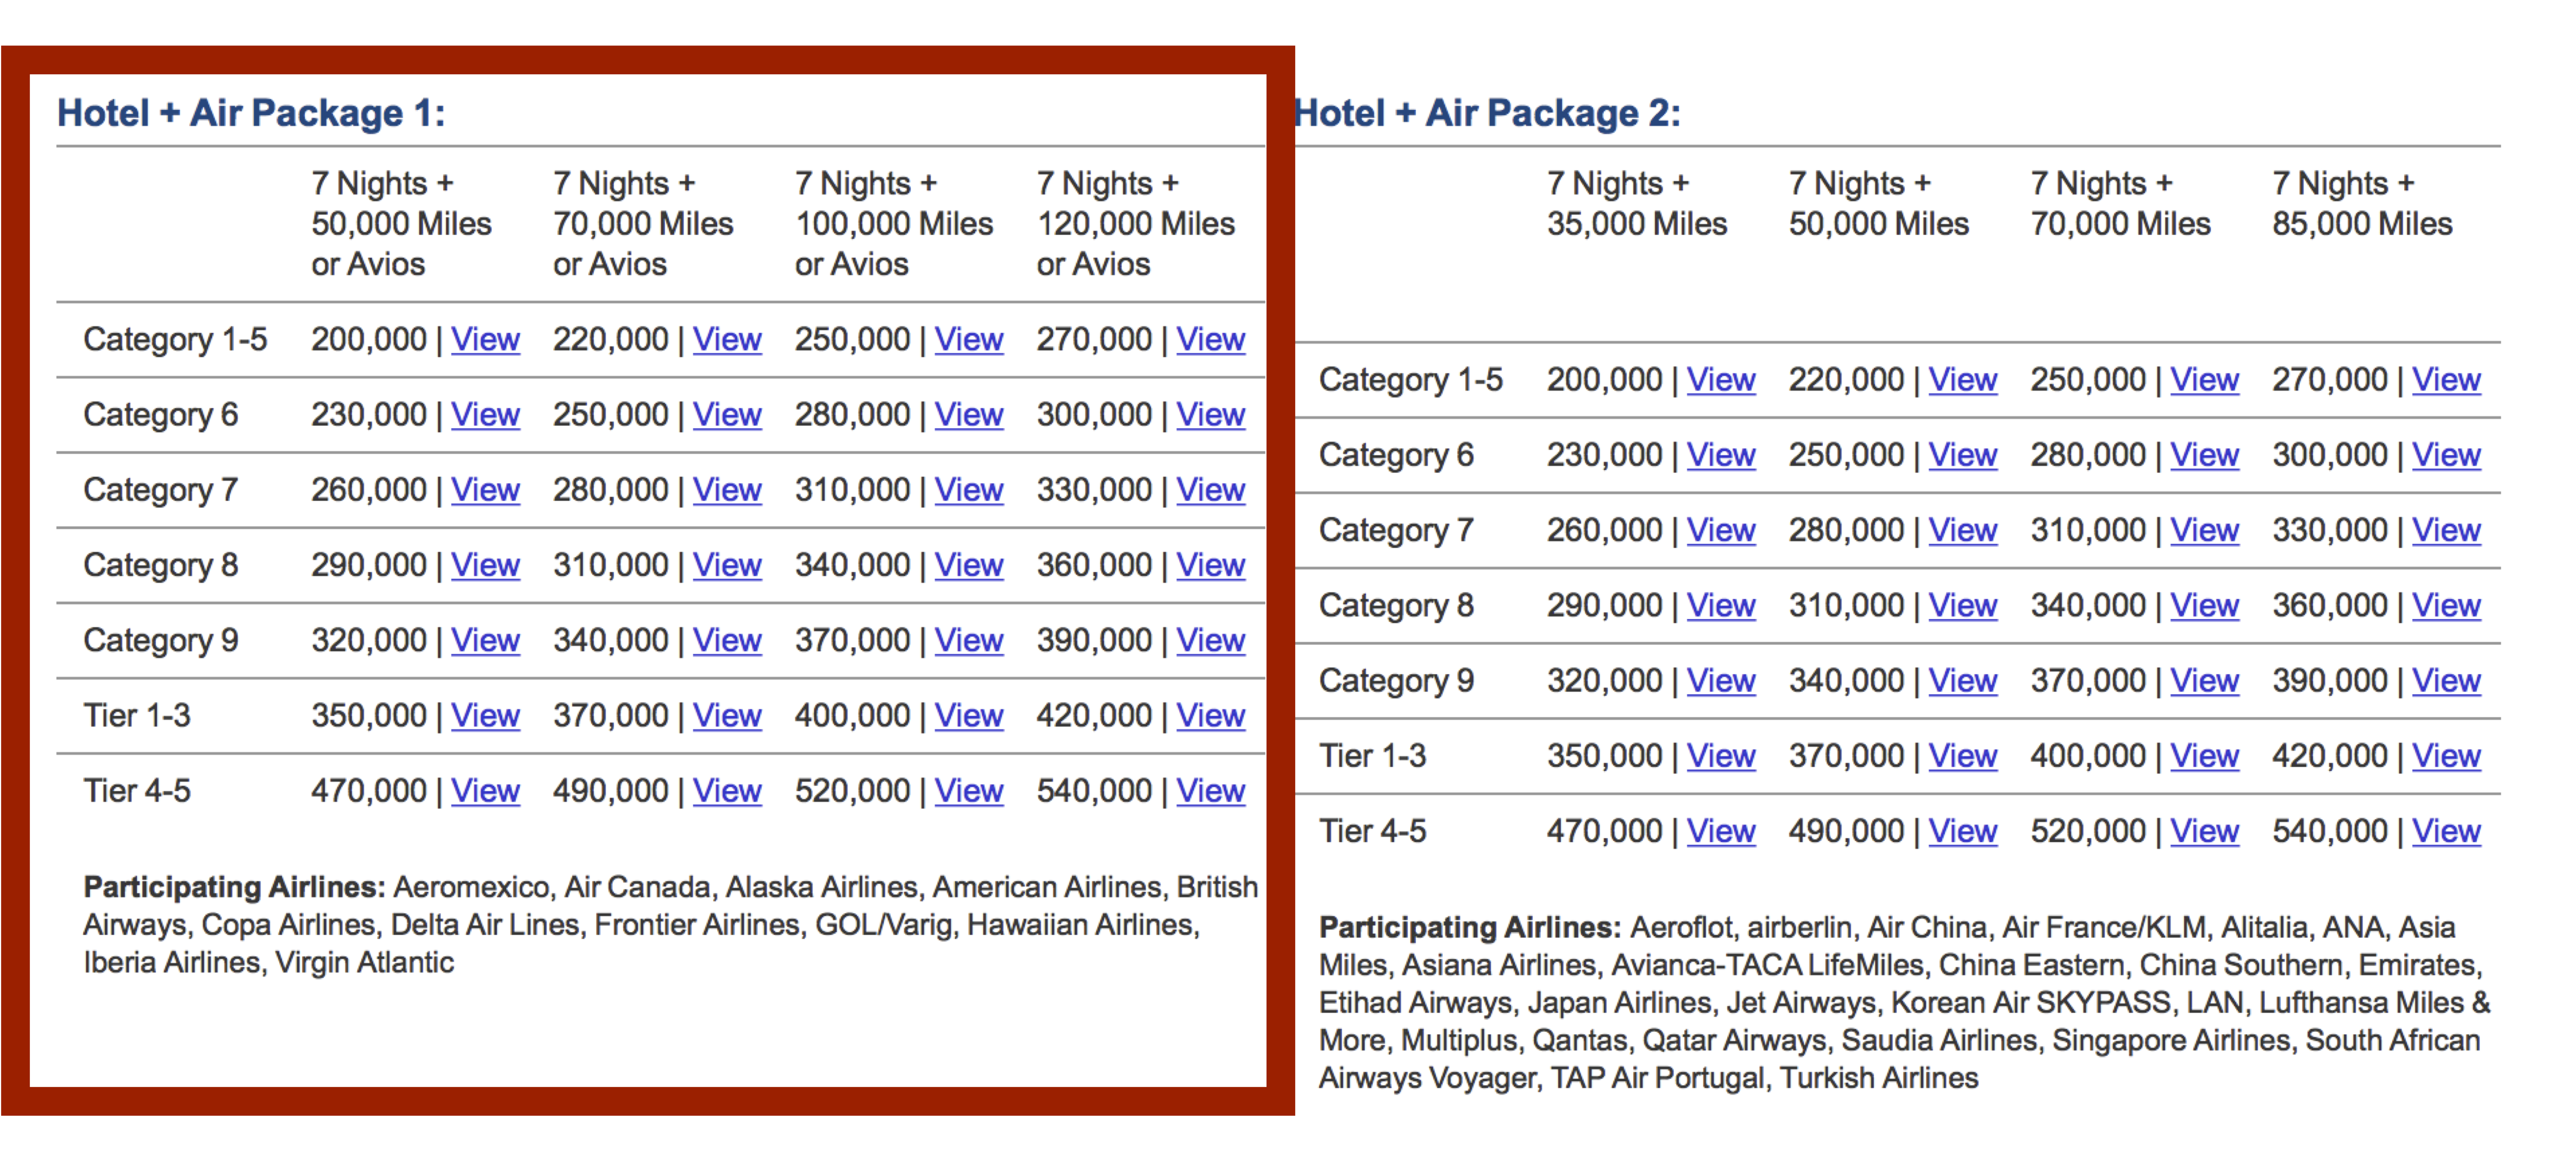 A complete guide to the marriott travel packages the best way to the above five tables screenshots from marriott tell what marriott travel packages are the points shown in the table are how much we need to redeem 1betcityfo Image collections